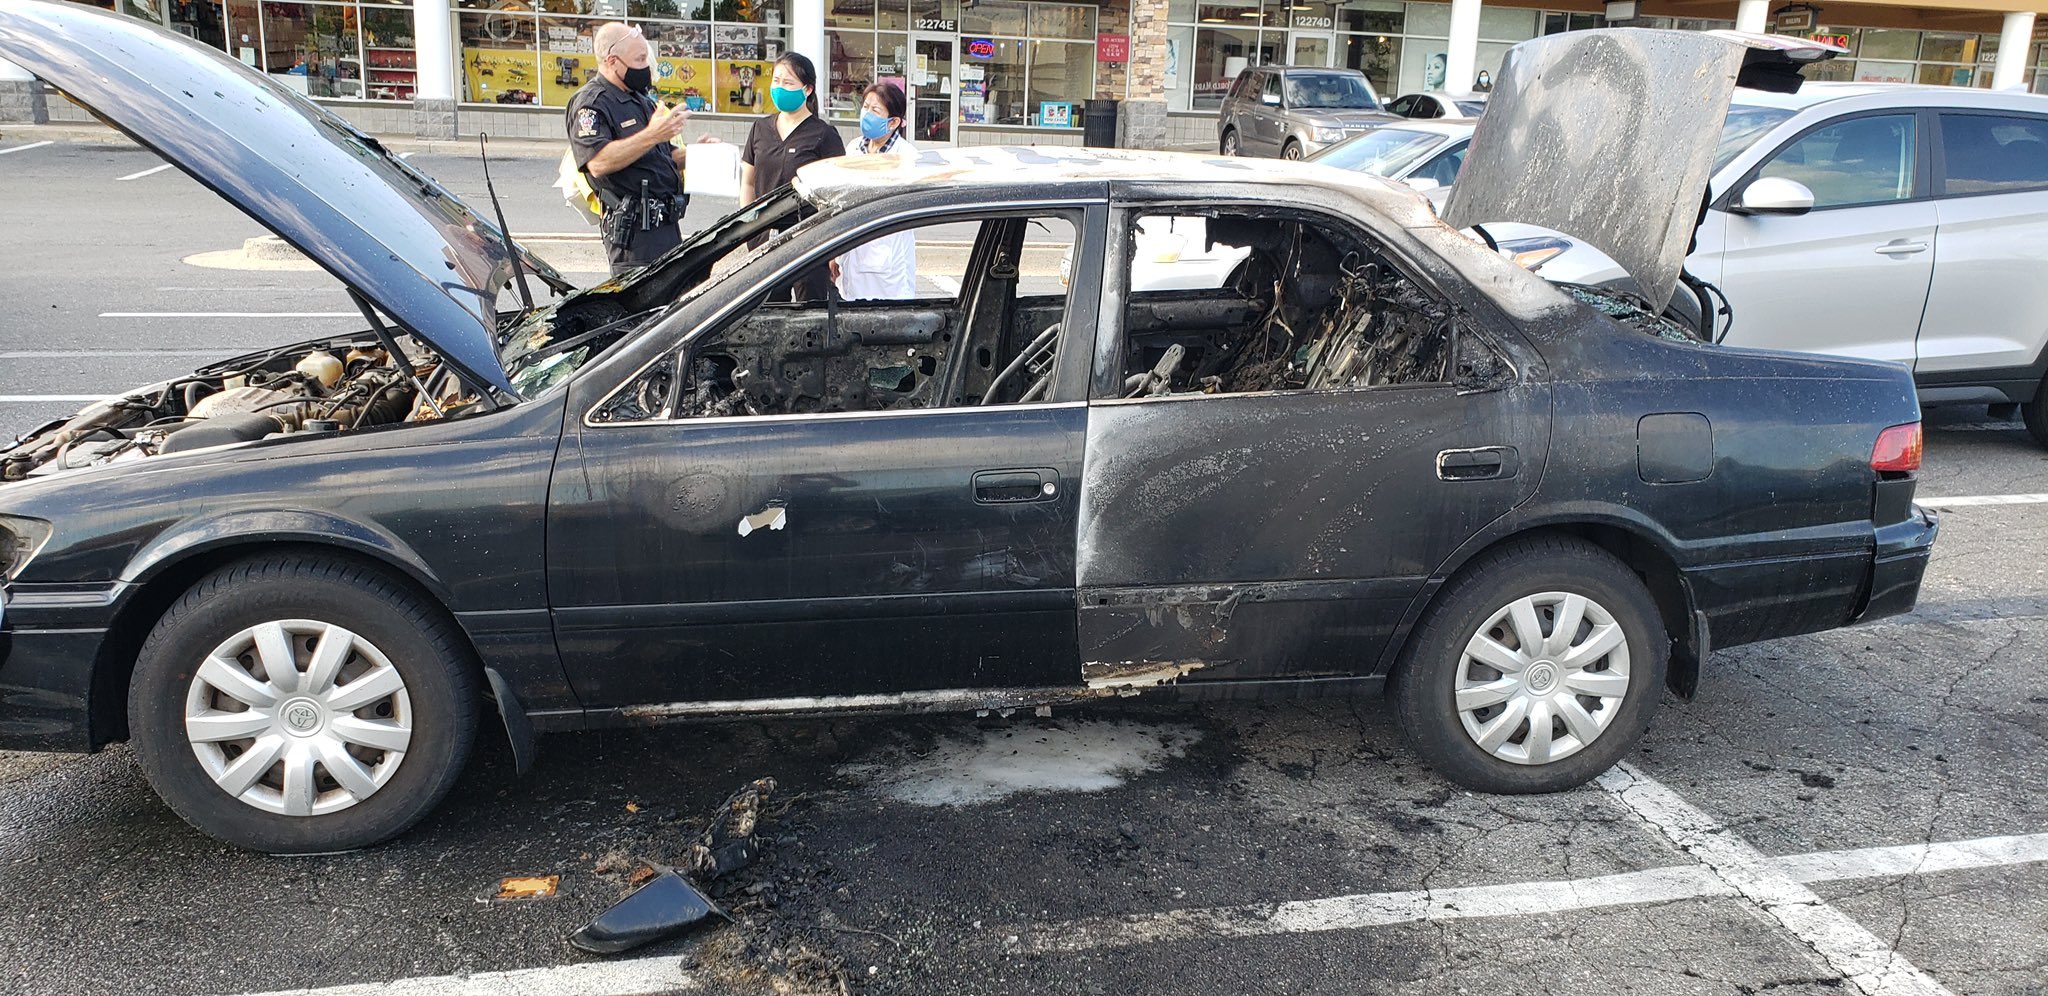 A driver smoking a cigarette burned their car completely.